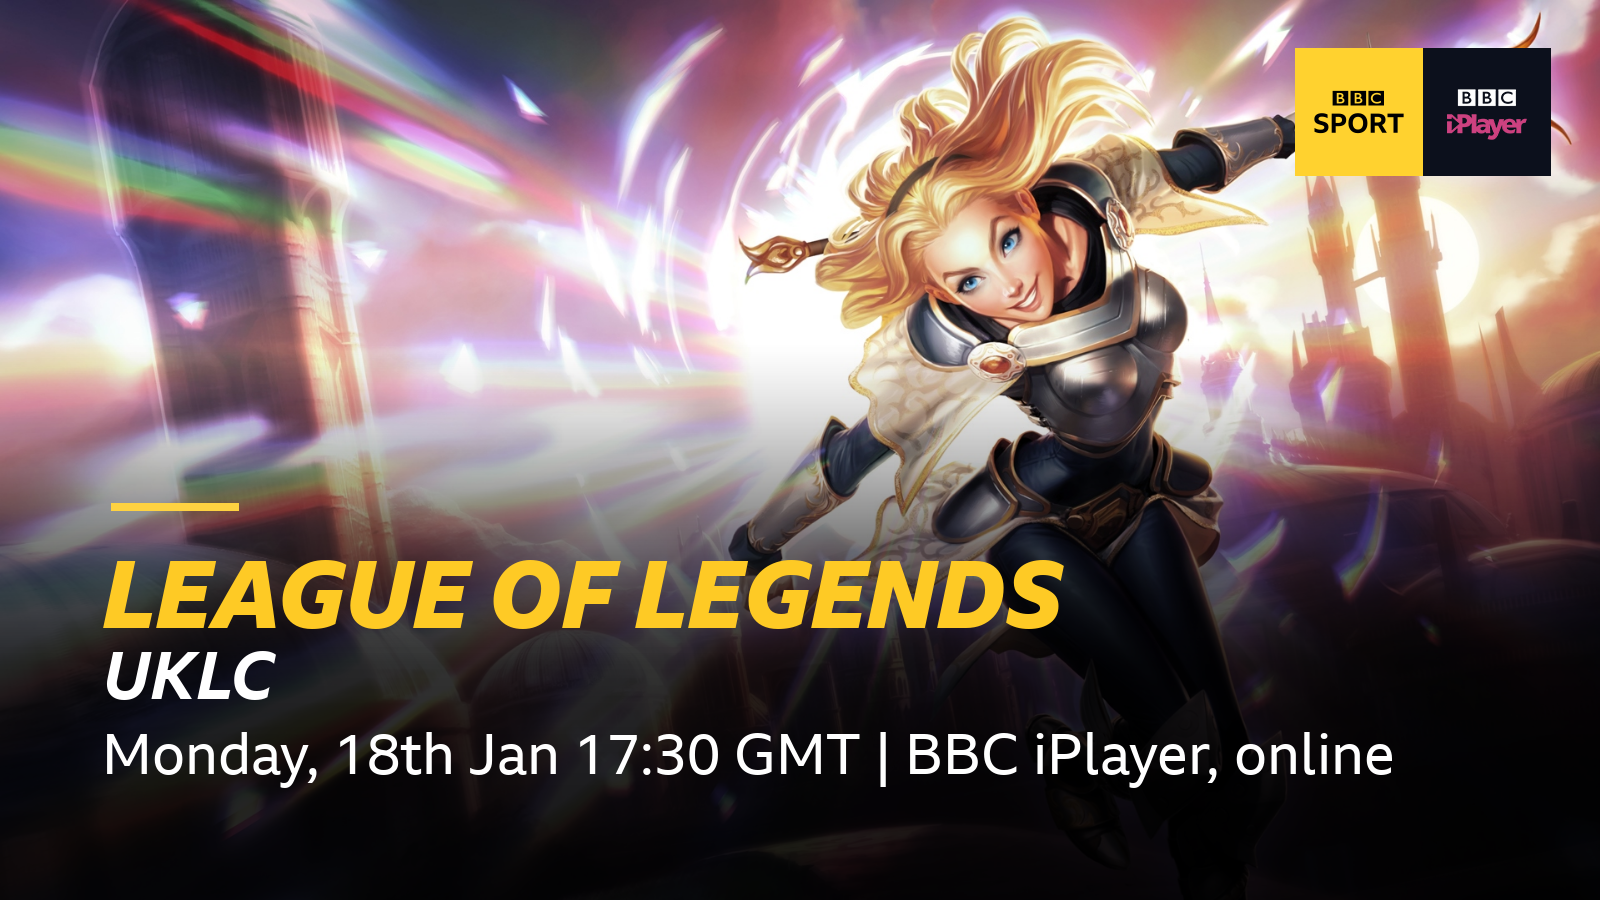 BBC Sport set to broadcast League of Legends' 2021 UKLC Spring Split